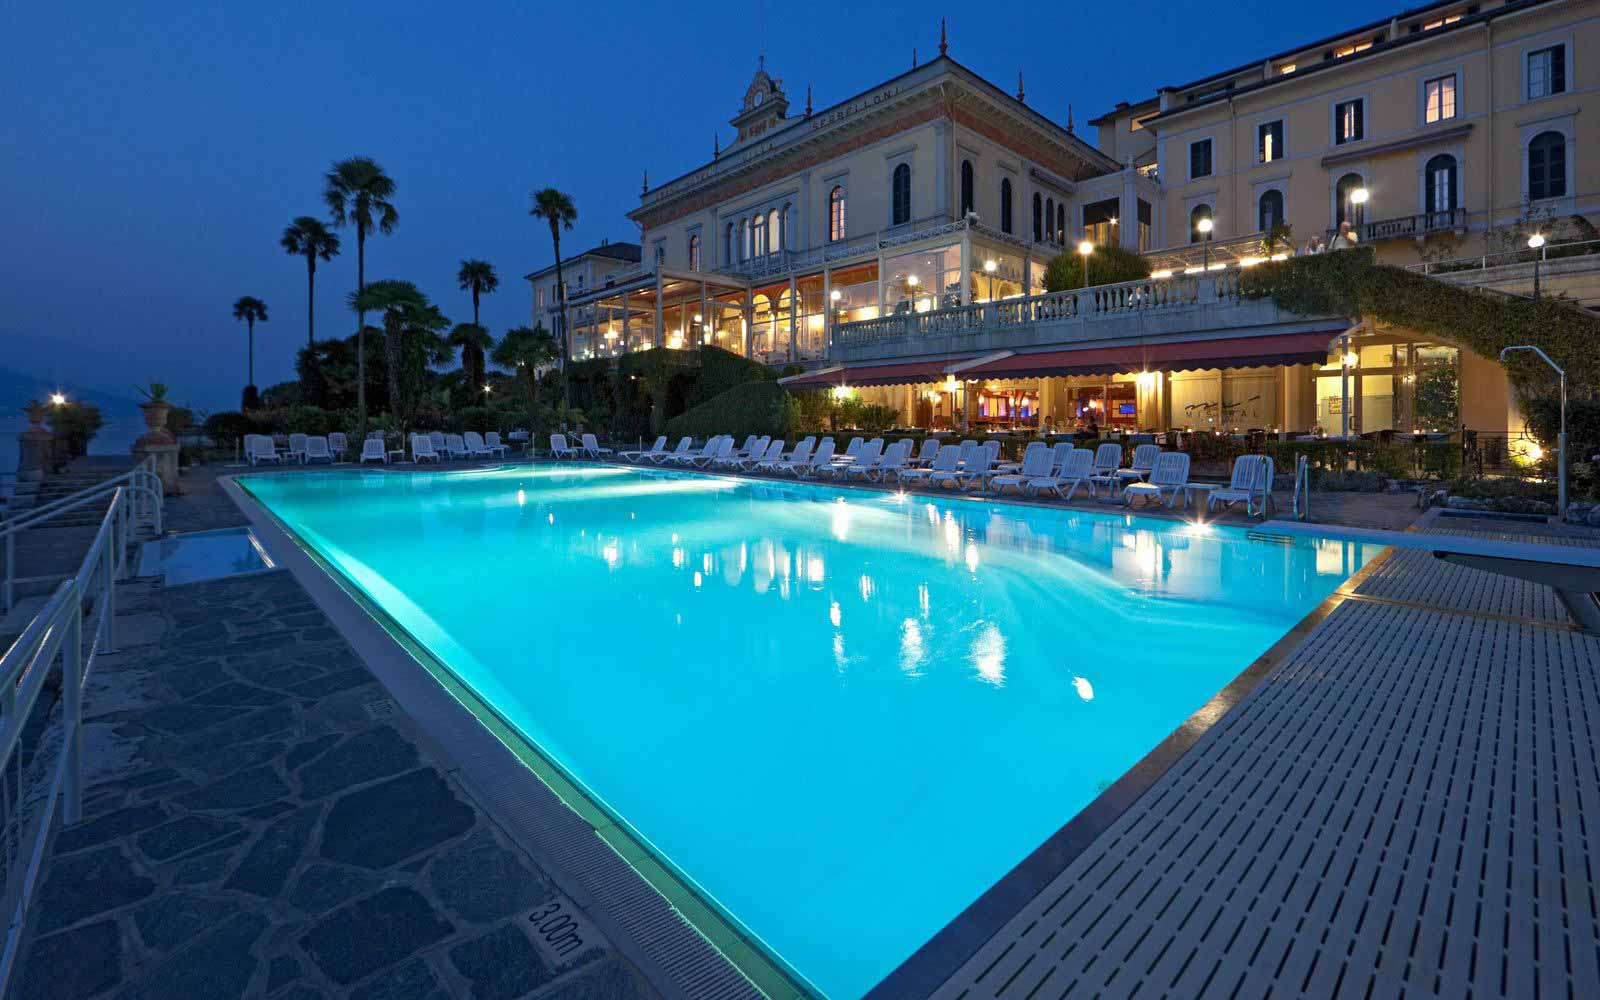 Grand Hotel Villa Serbelloni at night